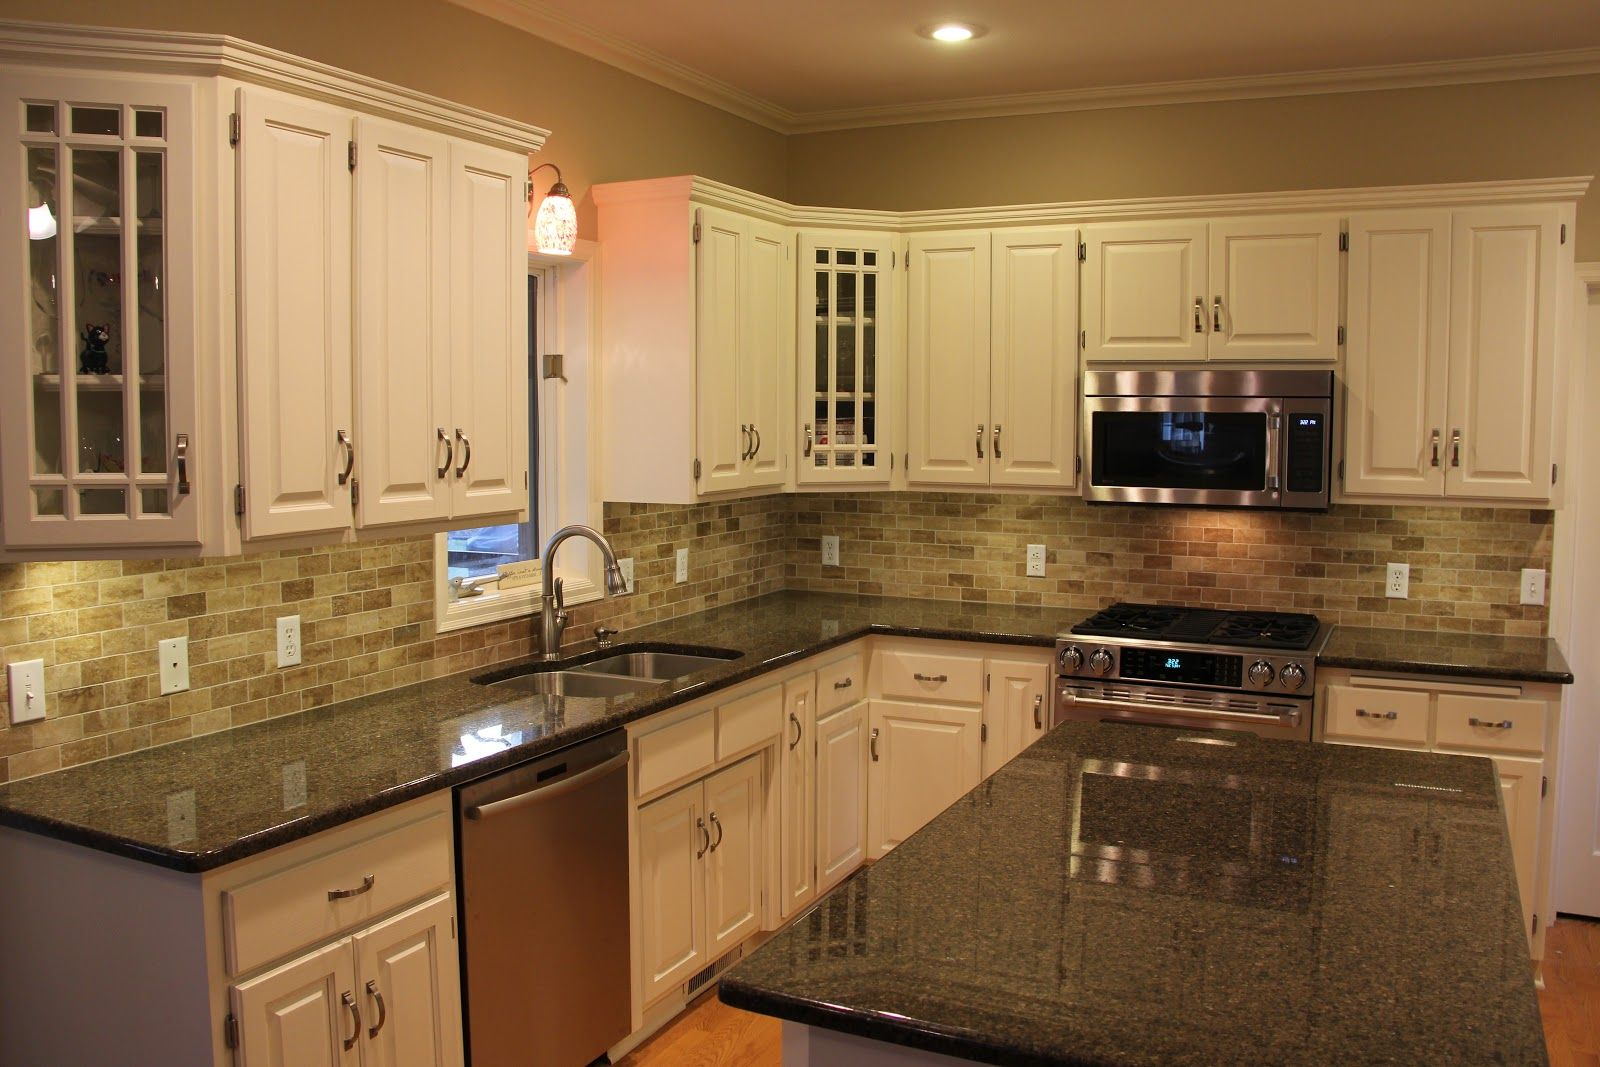 Tile Backsplashes With Granite Countertops Black Kitchen Granite Countertops With Tile